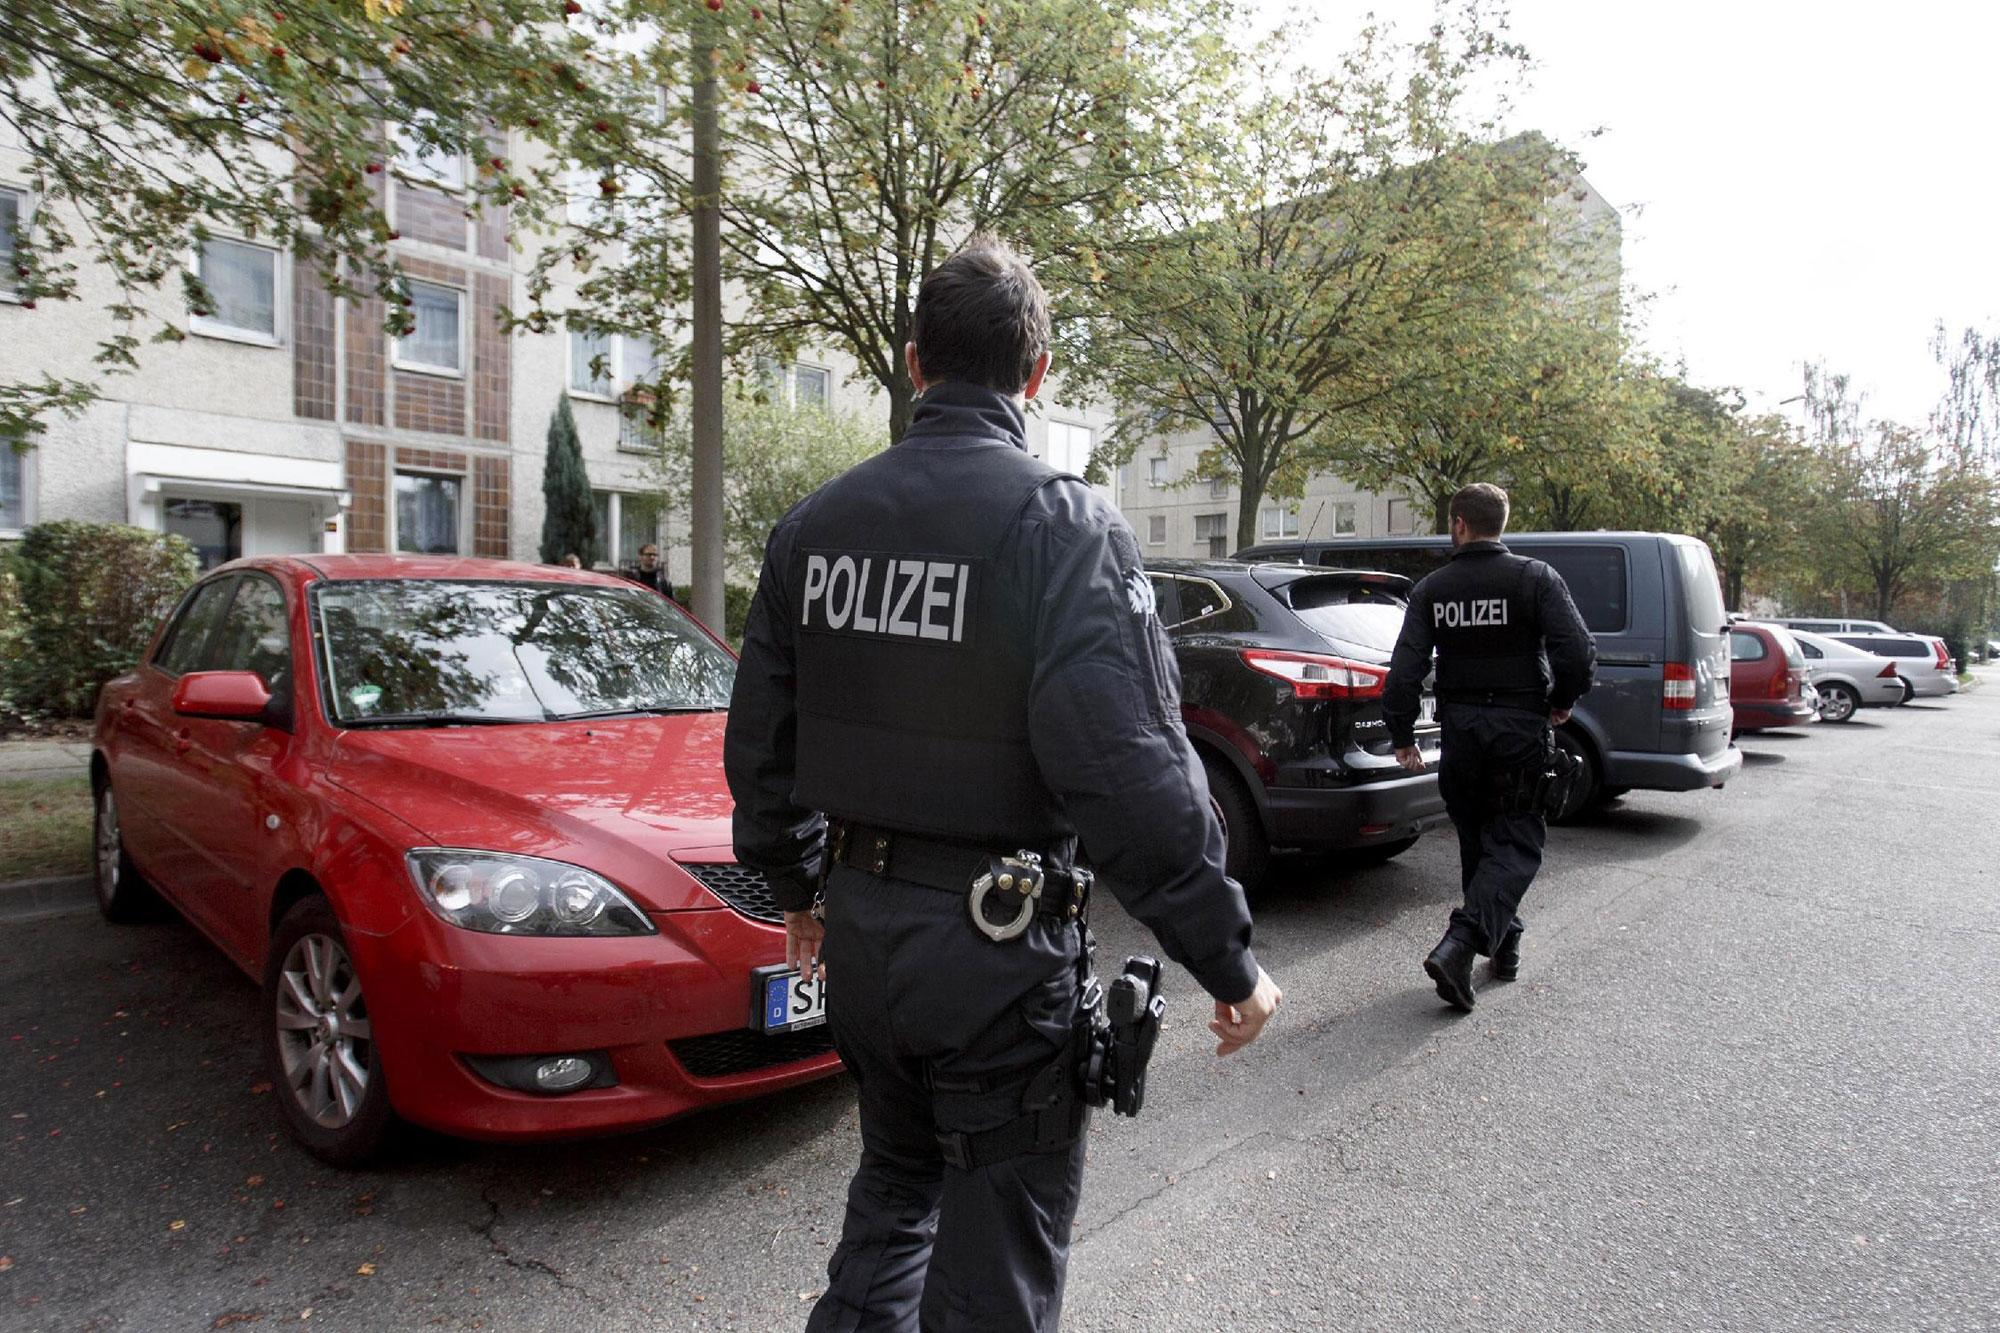 <p>German police outside of the apartment building where hours earlier police arrested Syrian terror suspect Jaber Al-Bakr on October 10, 2016 in Leipzig, Germany. (Carsten Koall/Getty Images) </p>